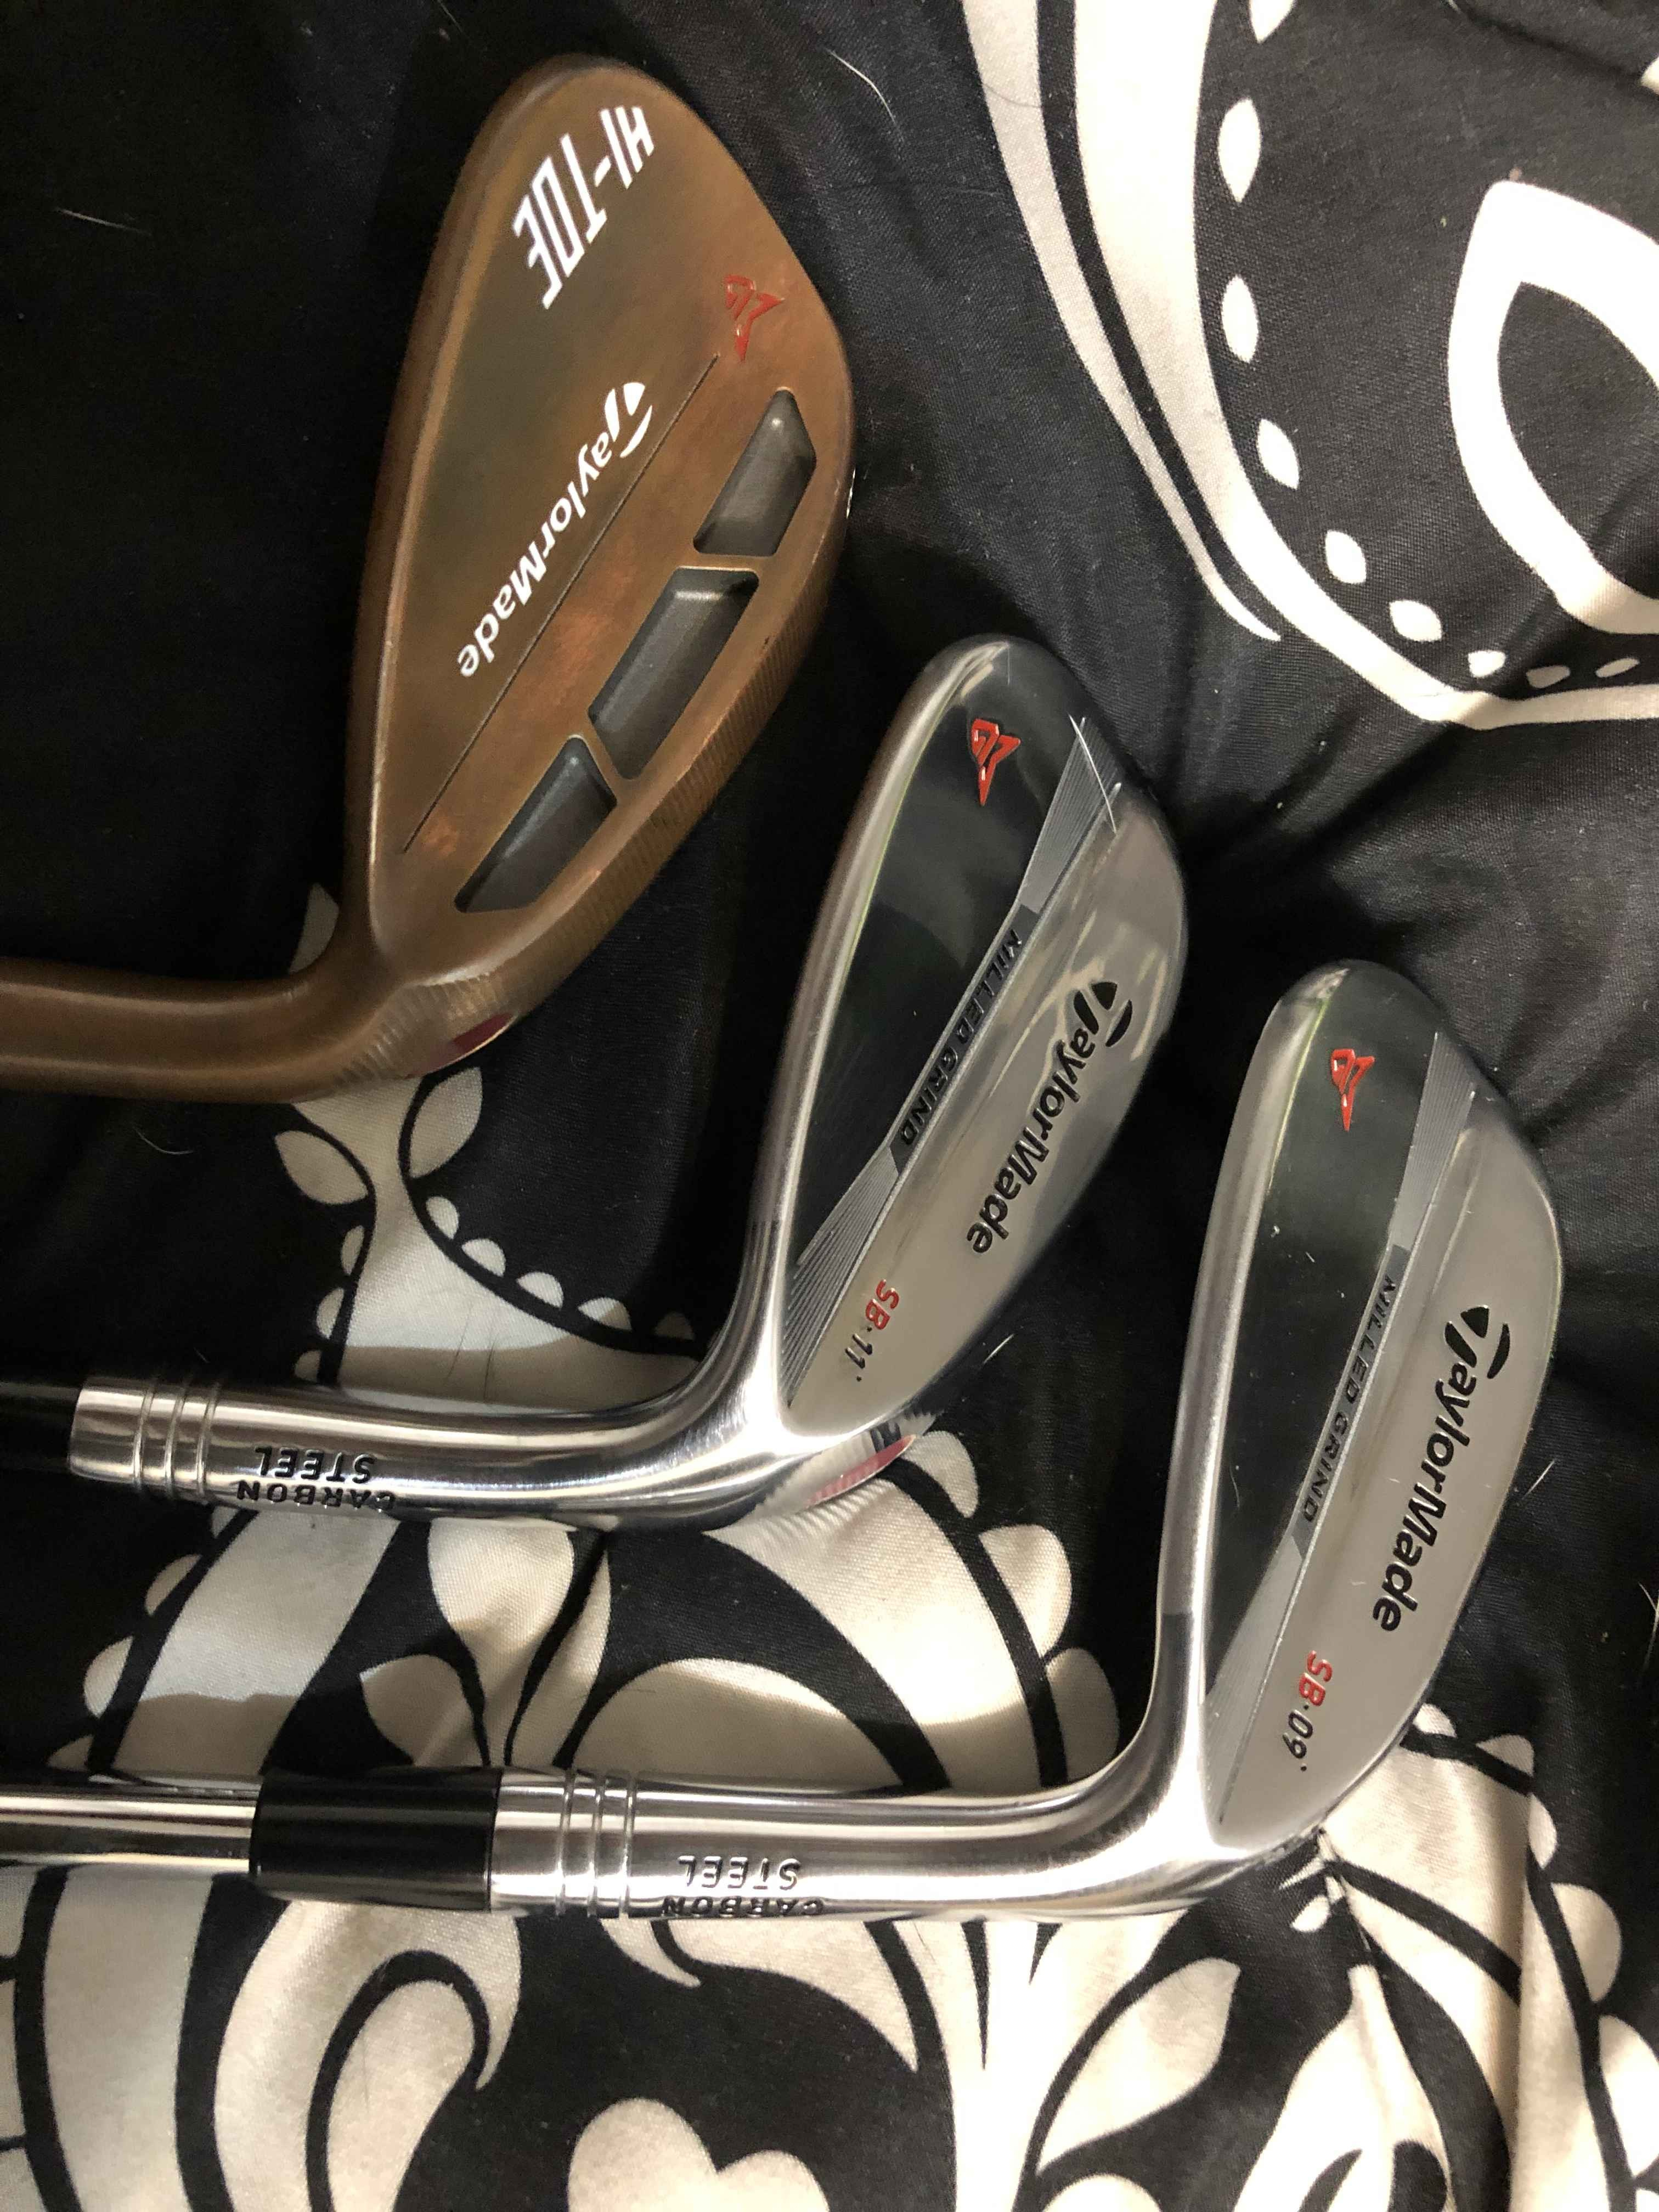 Taylormade milled grind wedge set